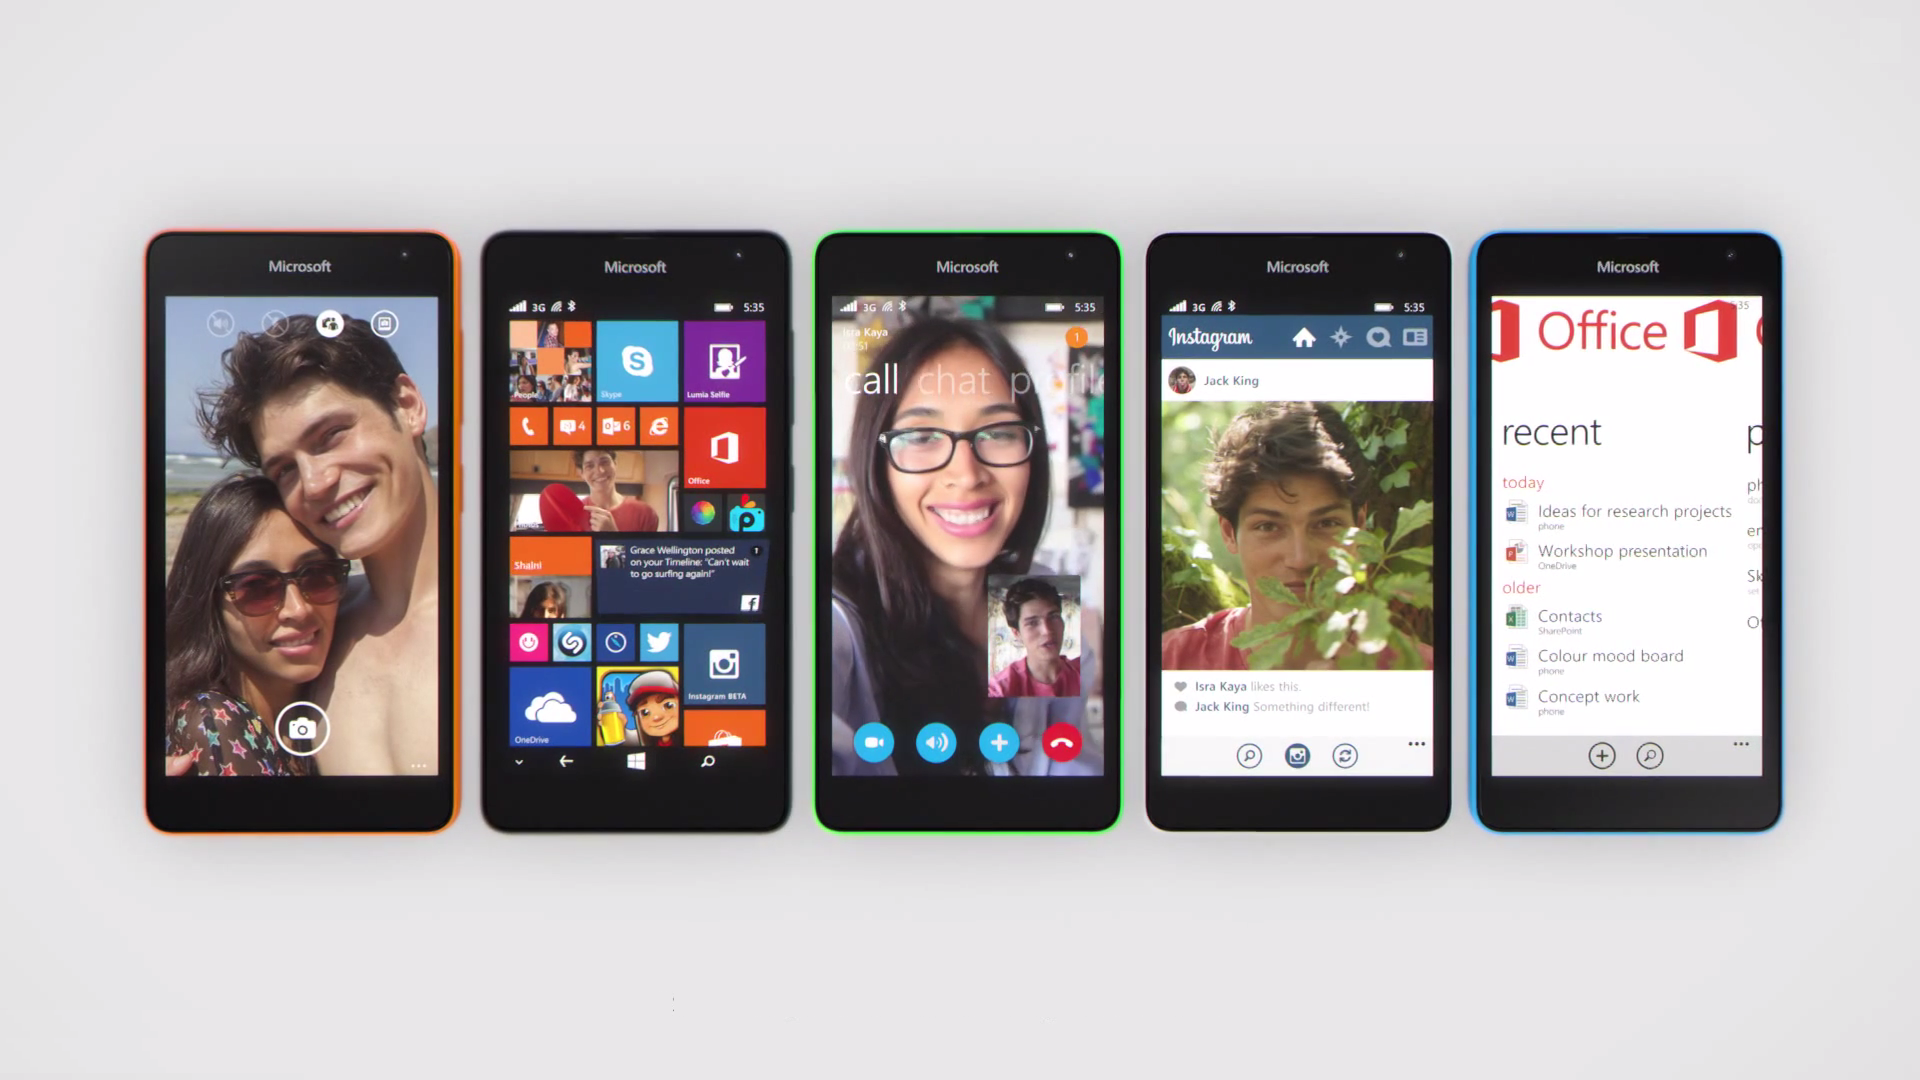 Nokia Lumia 535 Saturn: Microsoft's First Non-Nokia Lumia Is The Budget Lumia 535